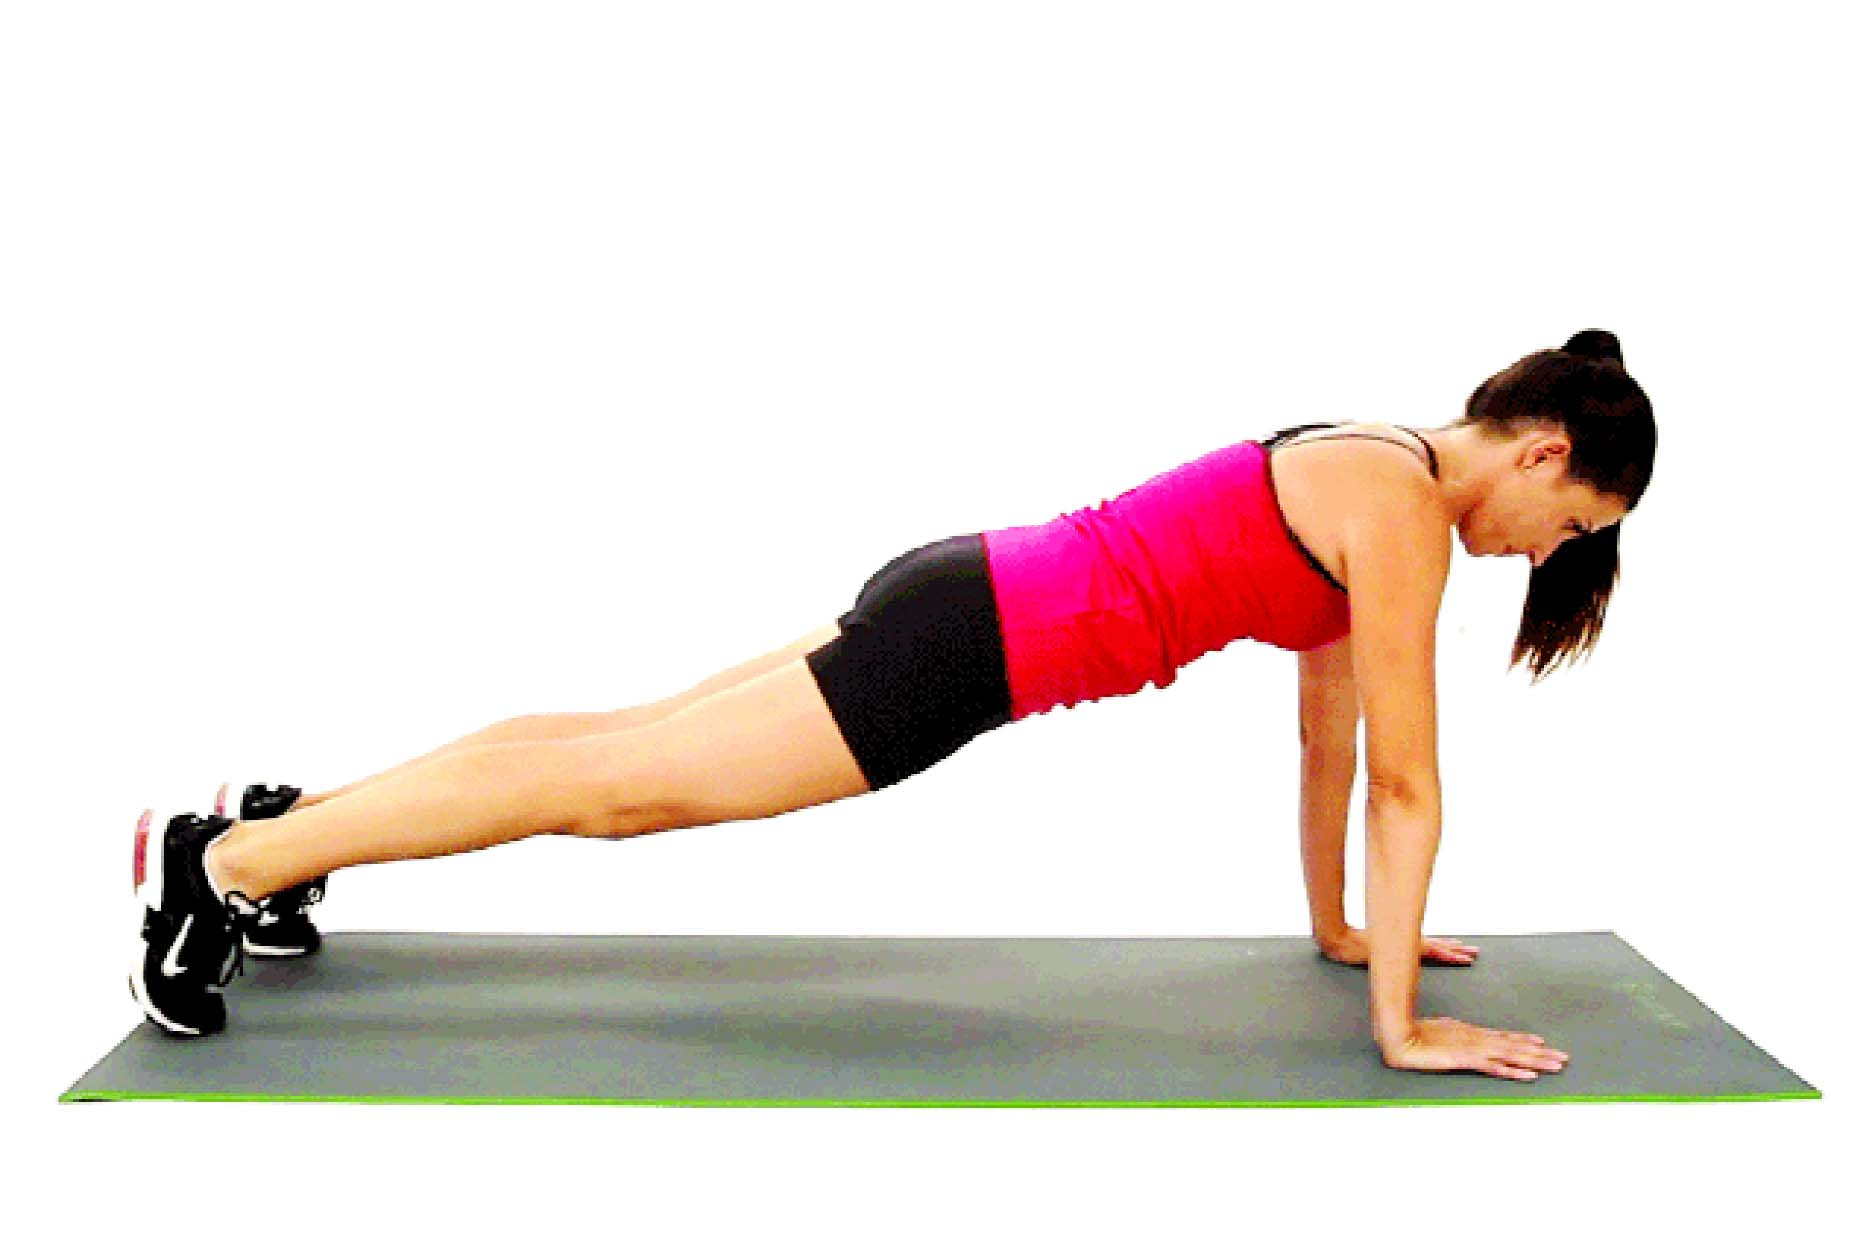 Planks give a better balance of muscles on the front, back and sides of the body during the activity as opposed to sit-ups which target only a few muscle groups